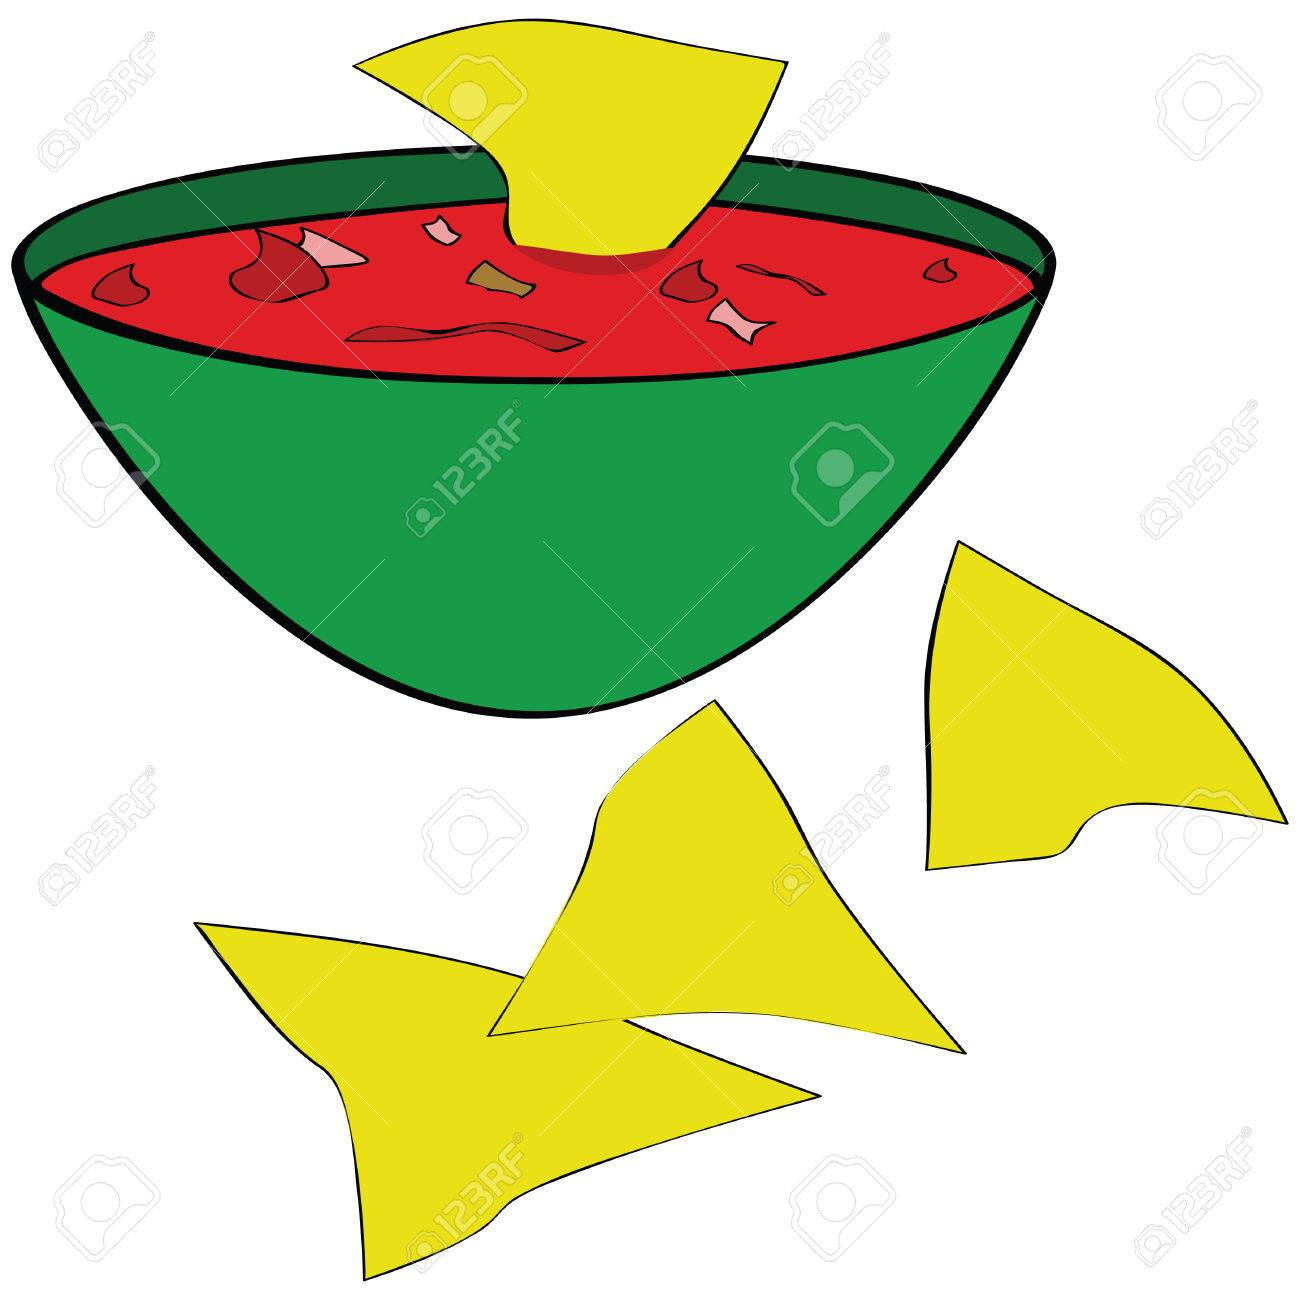 Illustration of corn tortilla chips served with a bowl of salsa Stock Vector - 7933518